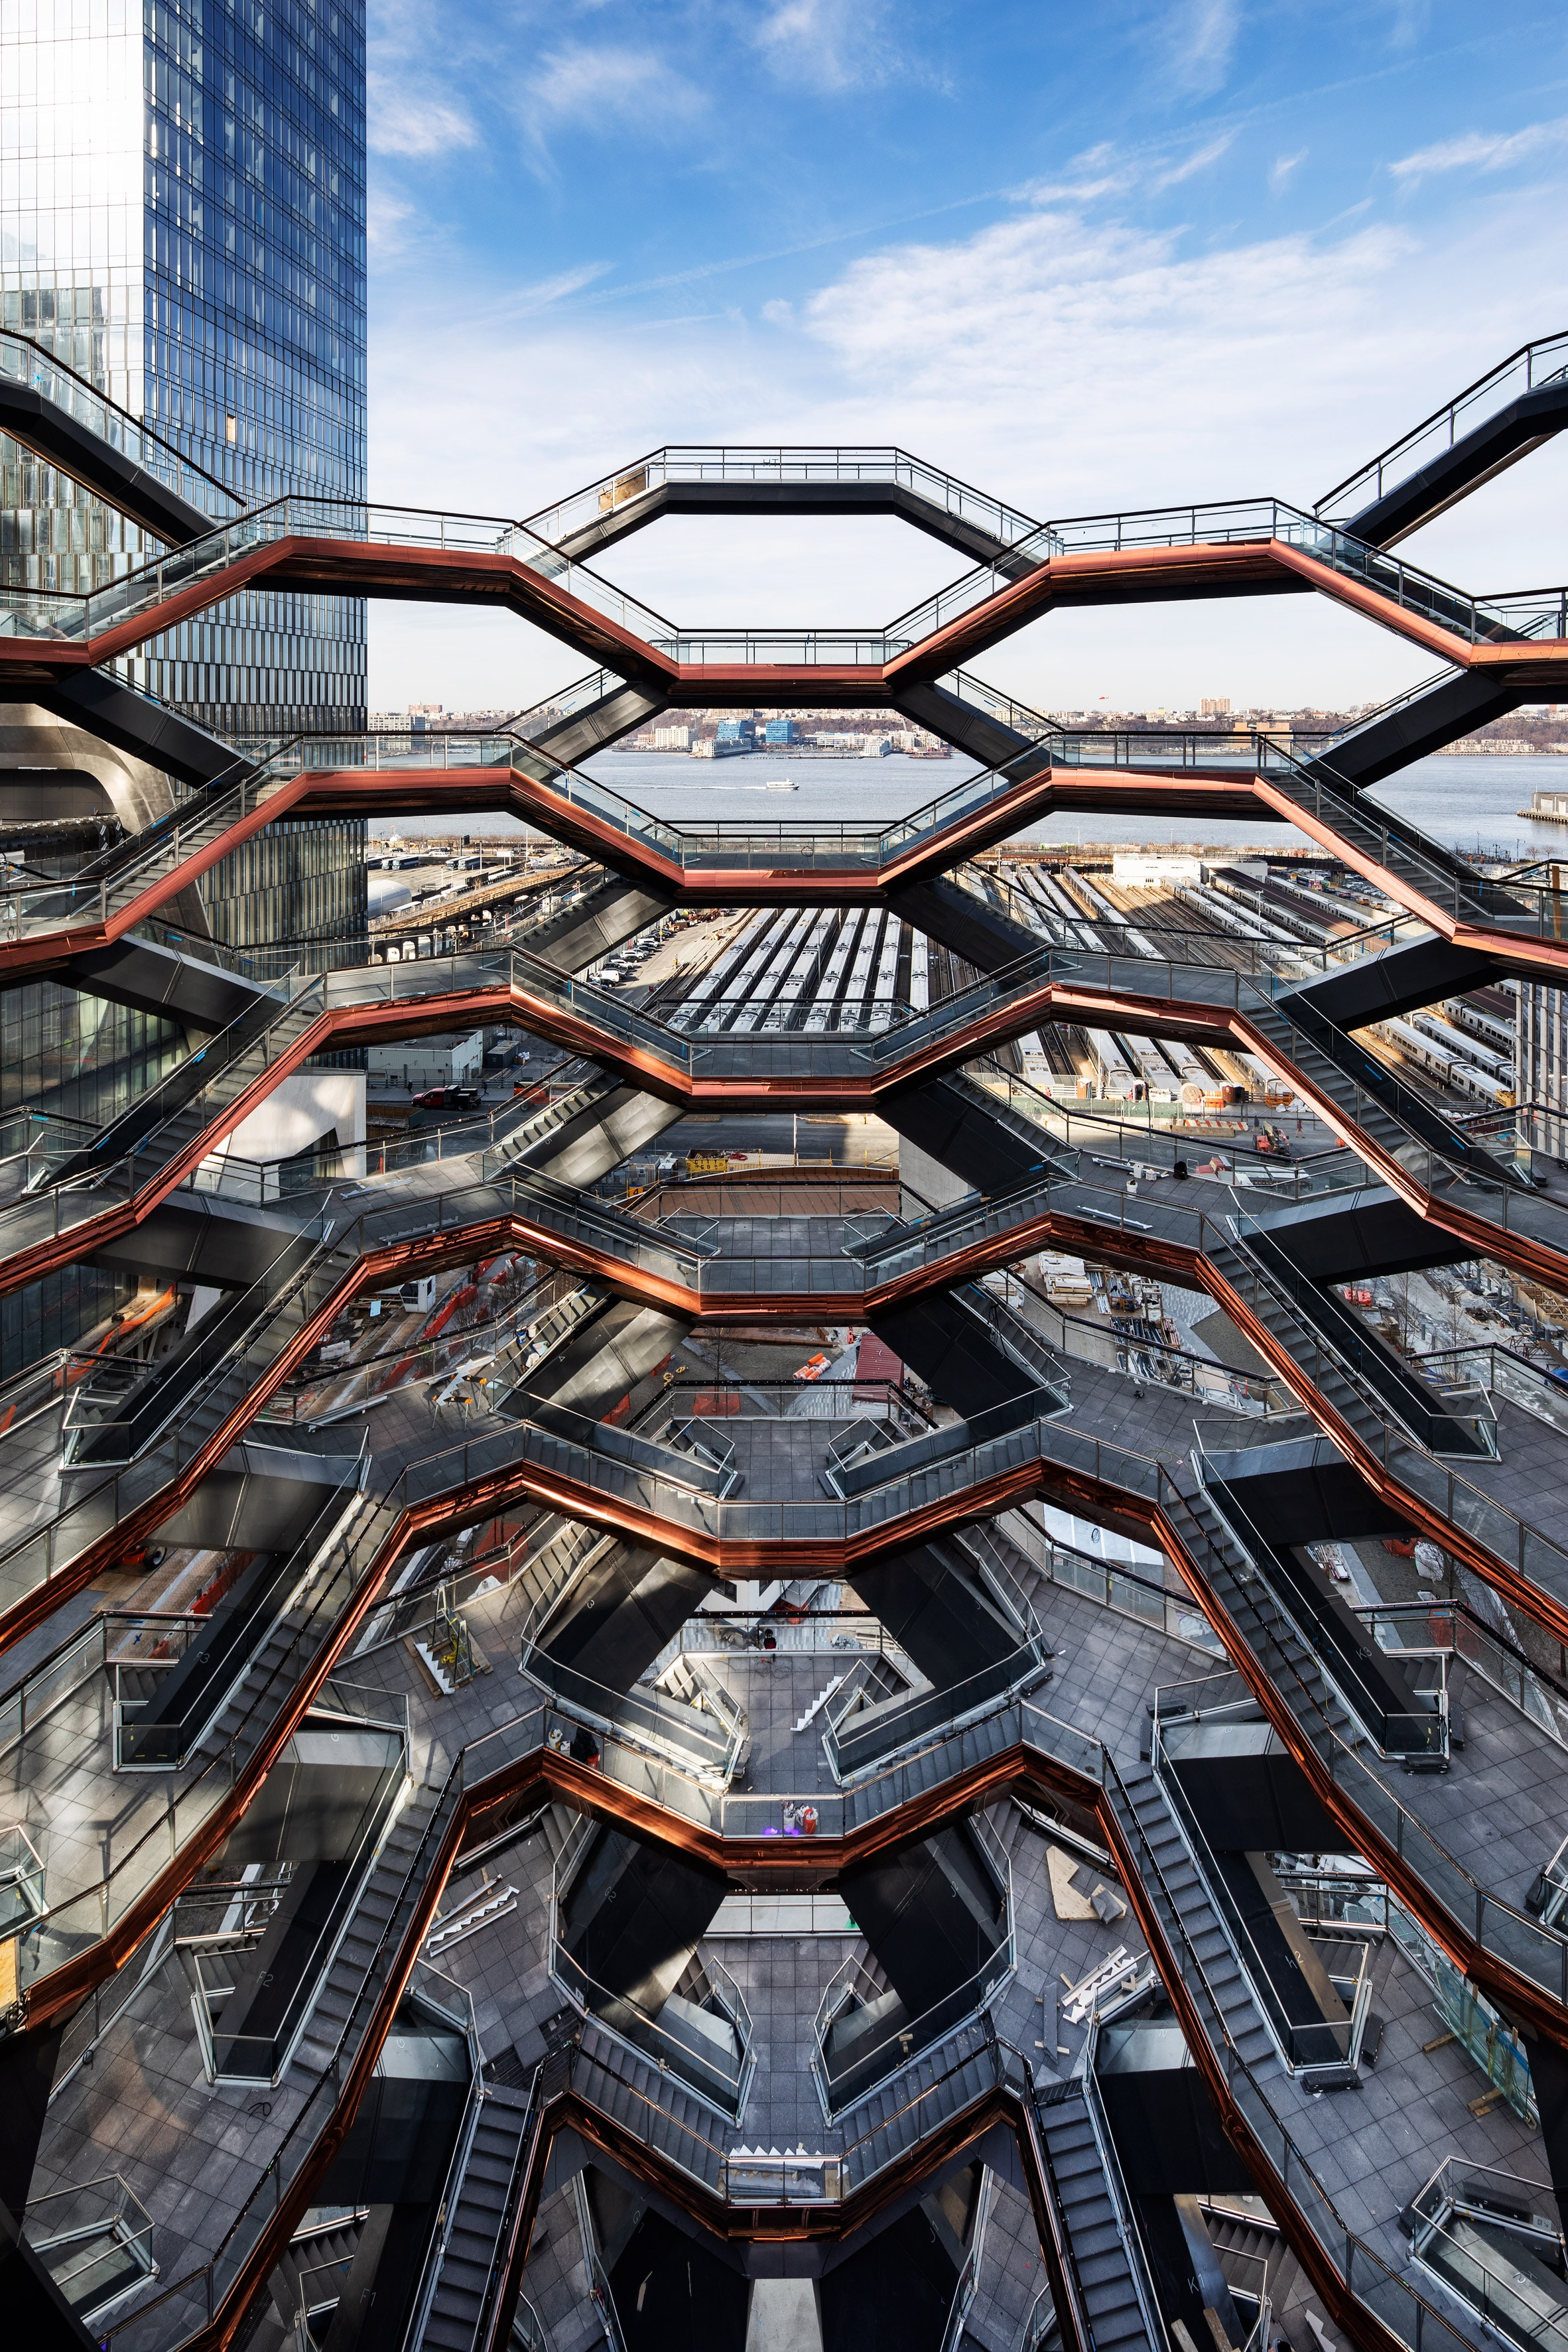 vessel-architecture-hudson-yards-new-york-city-us_dezeen_2364_col_3 Je vous confie mes 5 nouveautés à visiter à New York en 2019 !